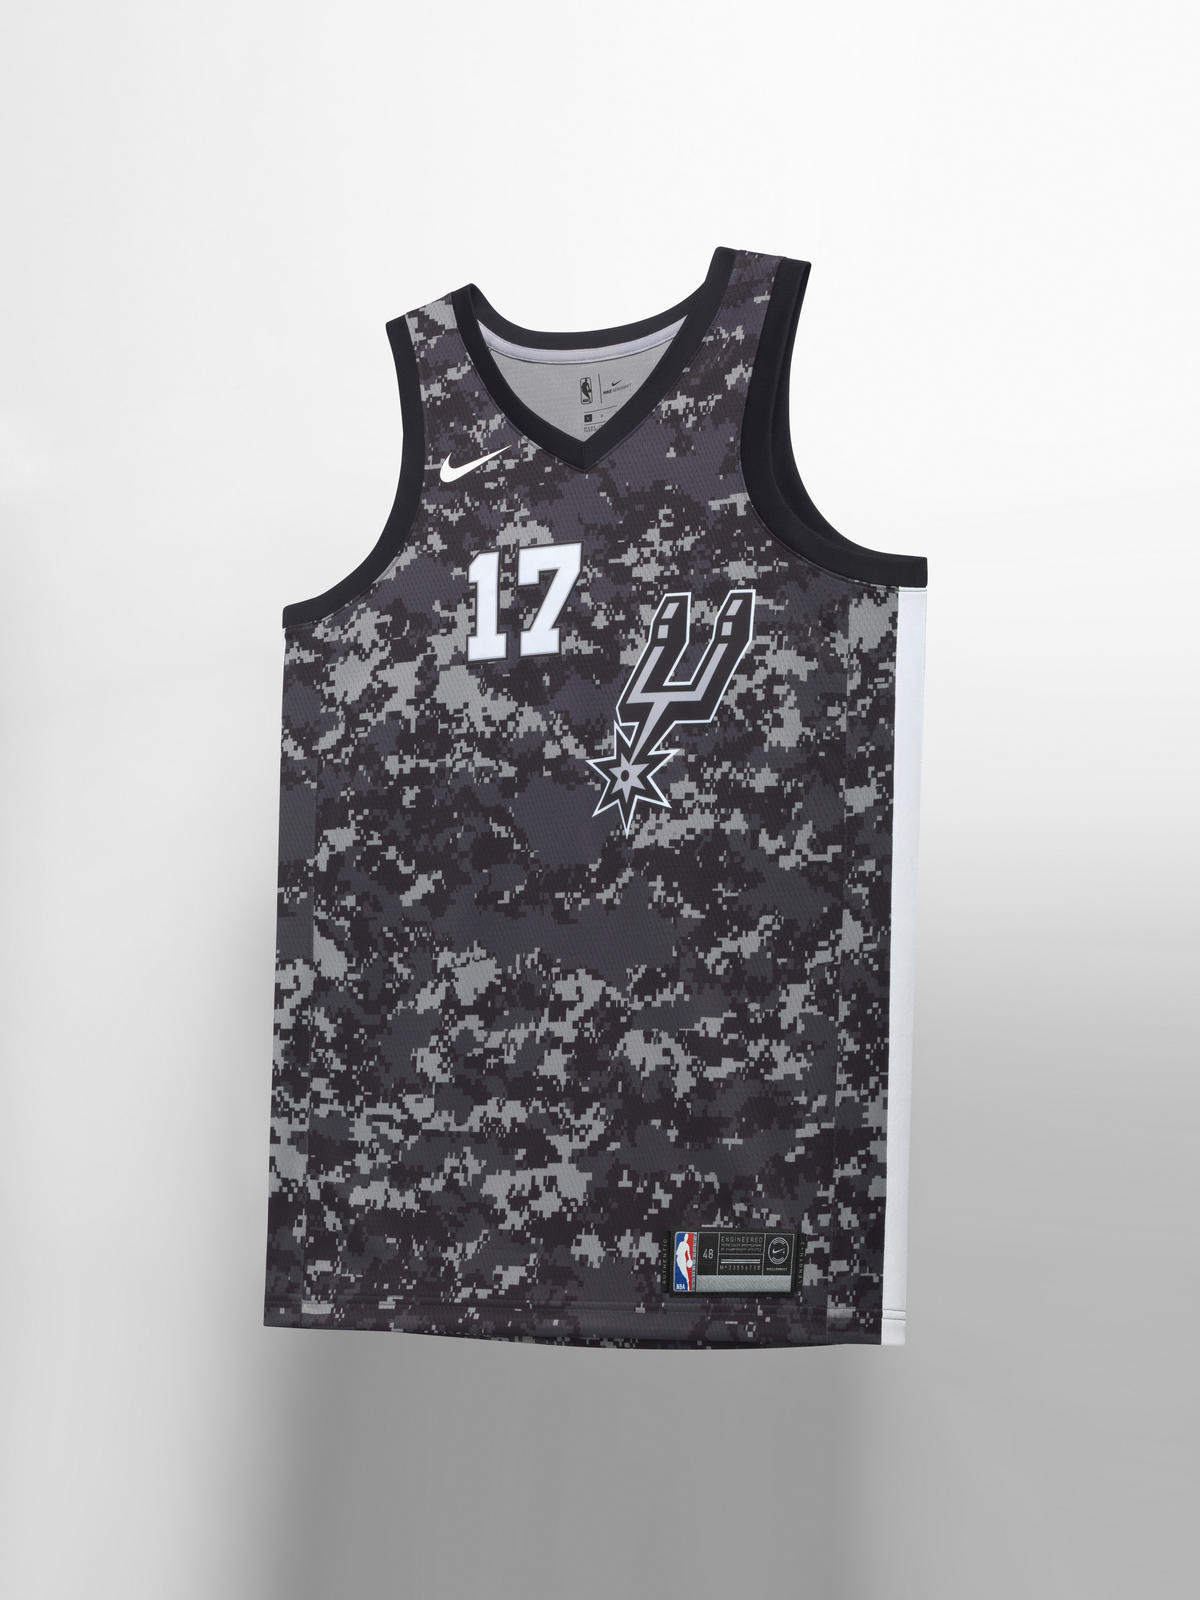 new styles 66448 95e22 Nike Unveils New NBA City Edition Jerseys 23 - WearTesters